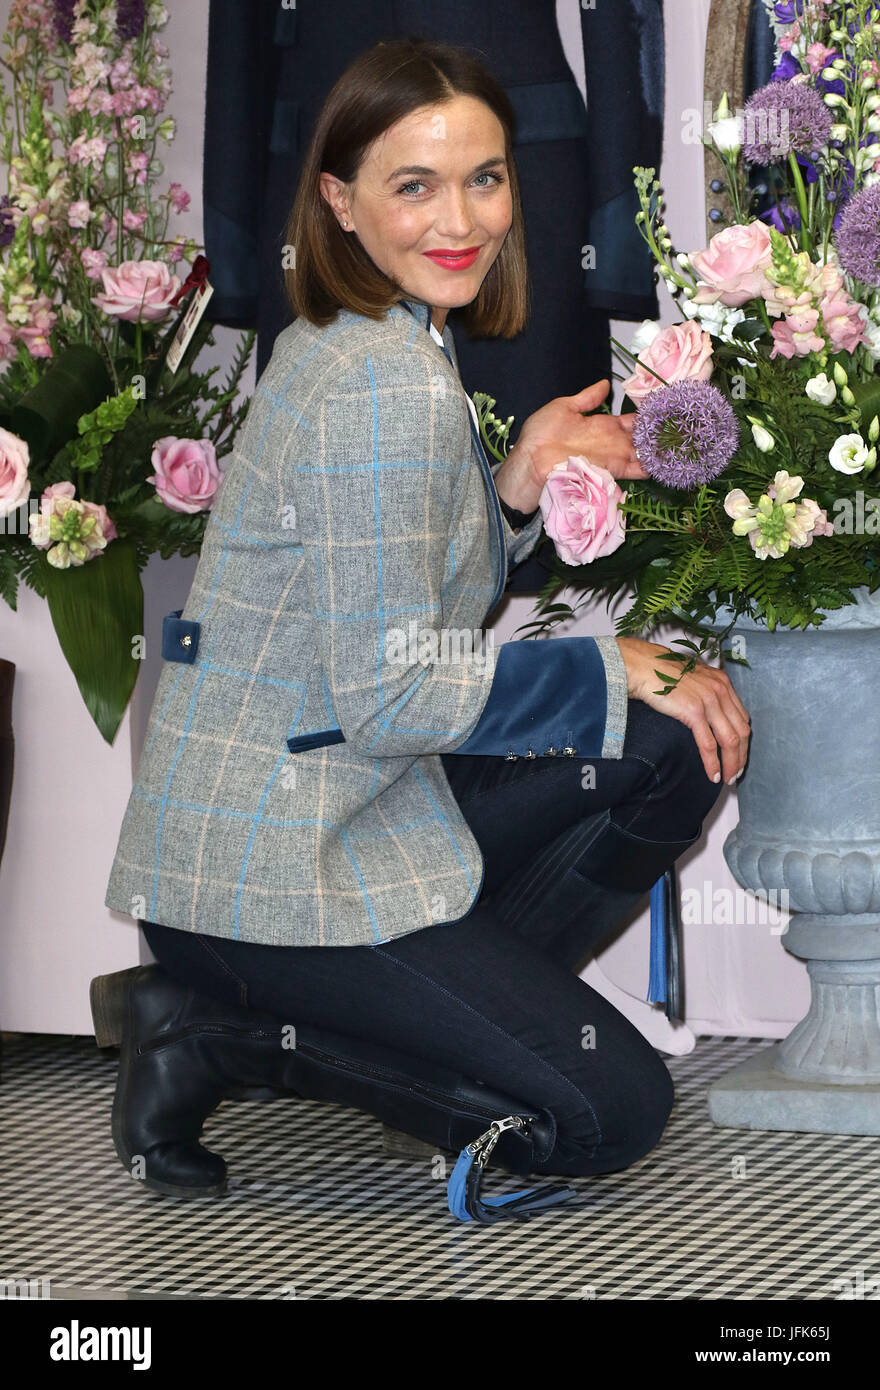 May 22, 2017 - Victoria Pendleton attending Chelsea Flower Show 2017 Press Day, Royal Hospital Chelsea  in London, - Stock Image